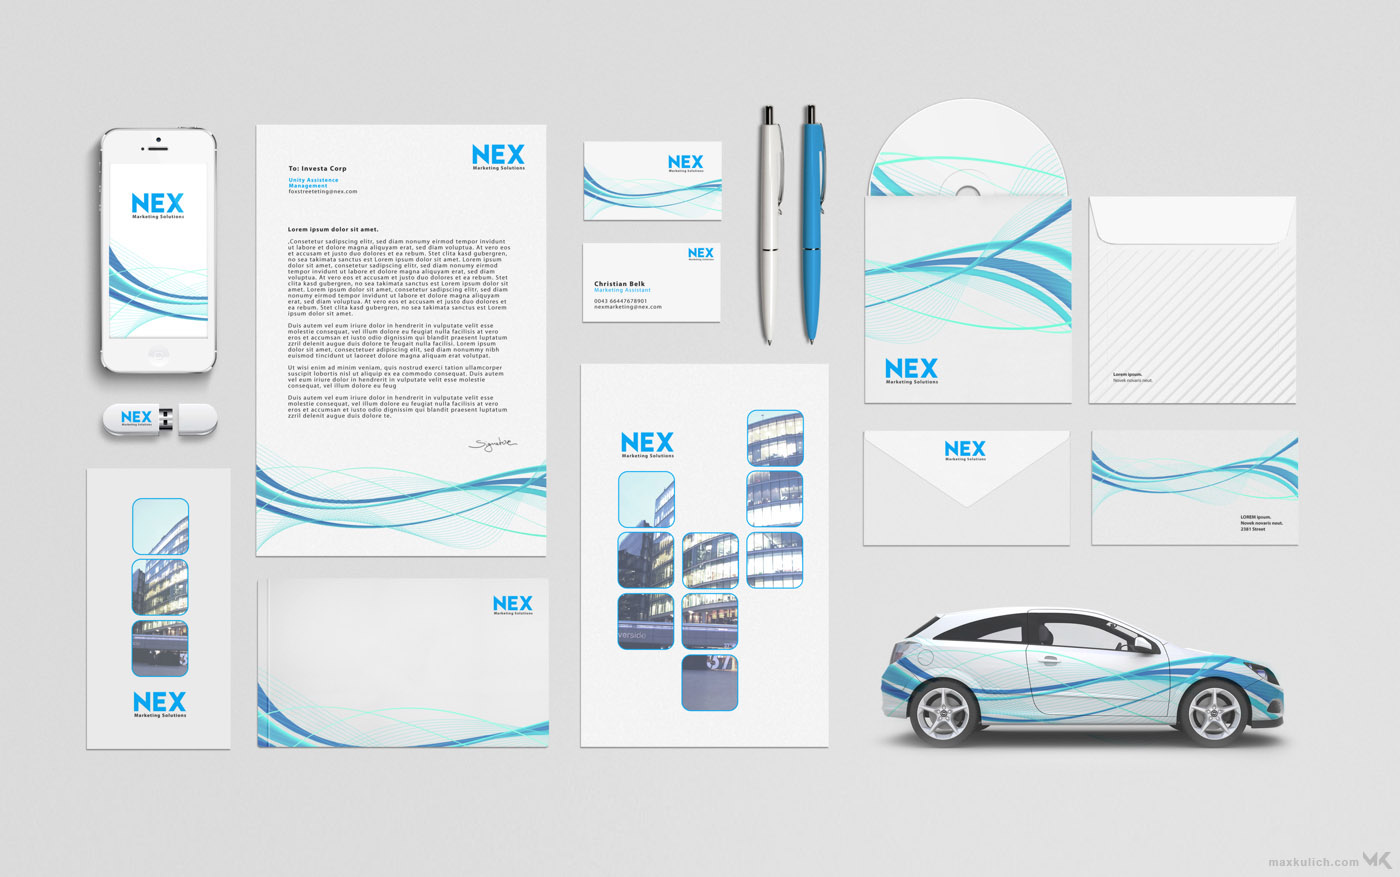 GraphicDesign_Branding_MaxKulich_07